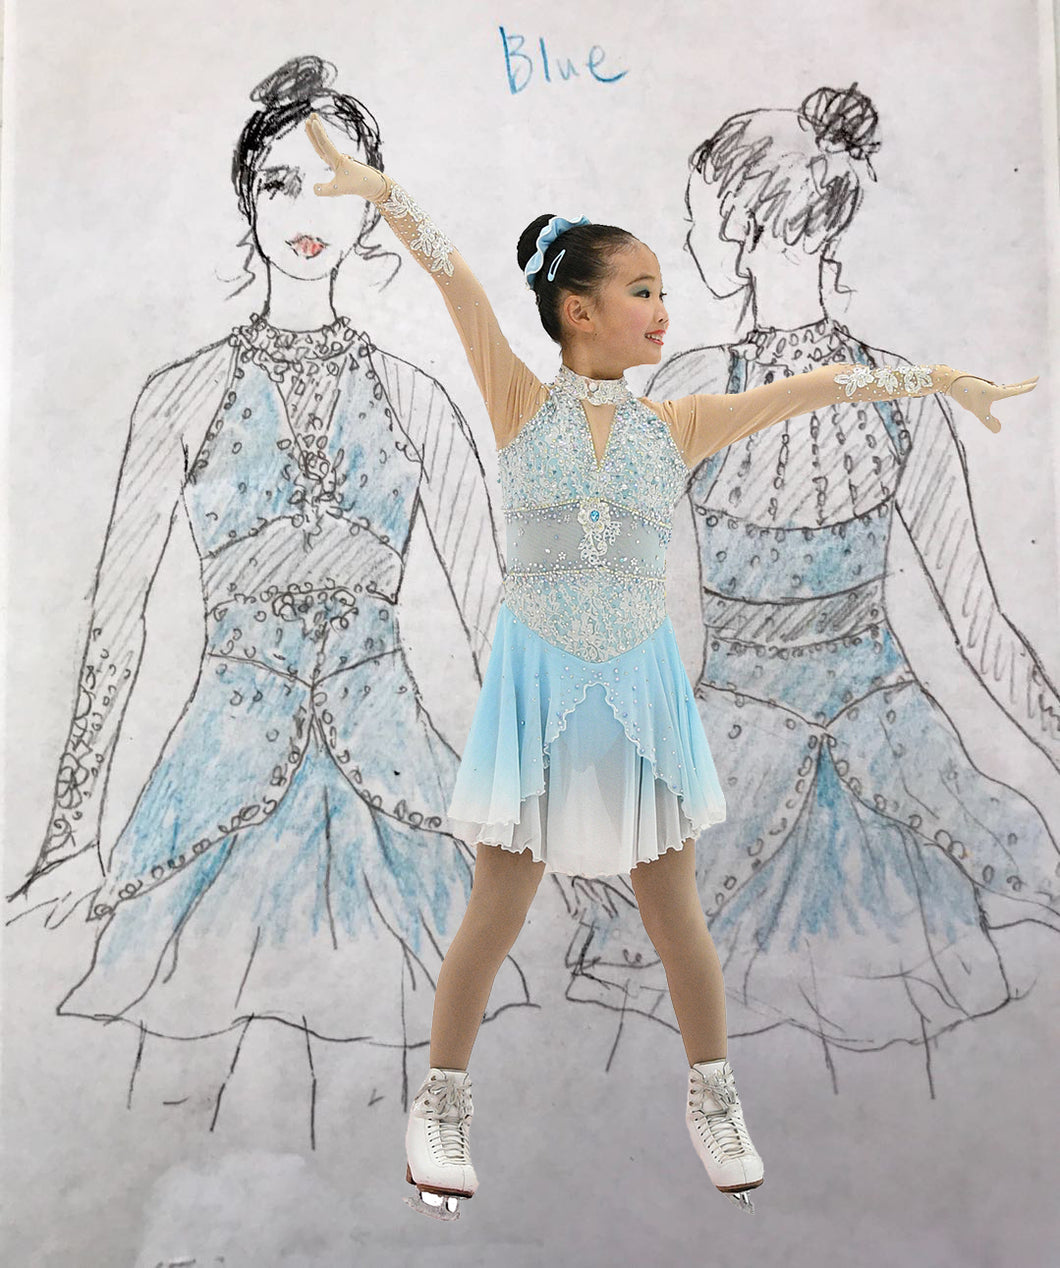 Fully Customized Figure Skating Dress: Production